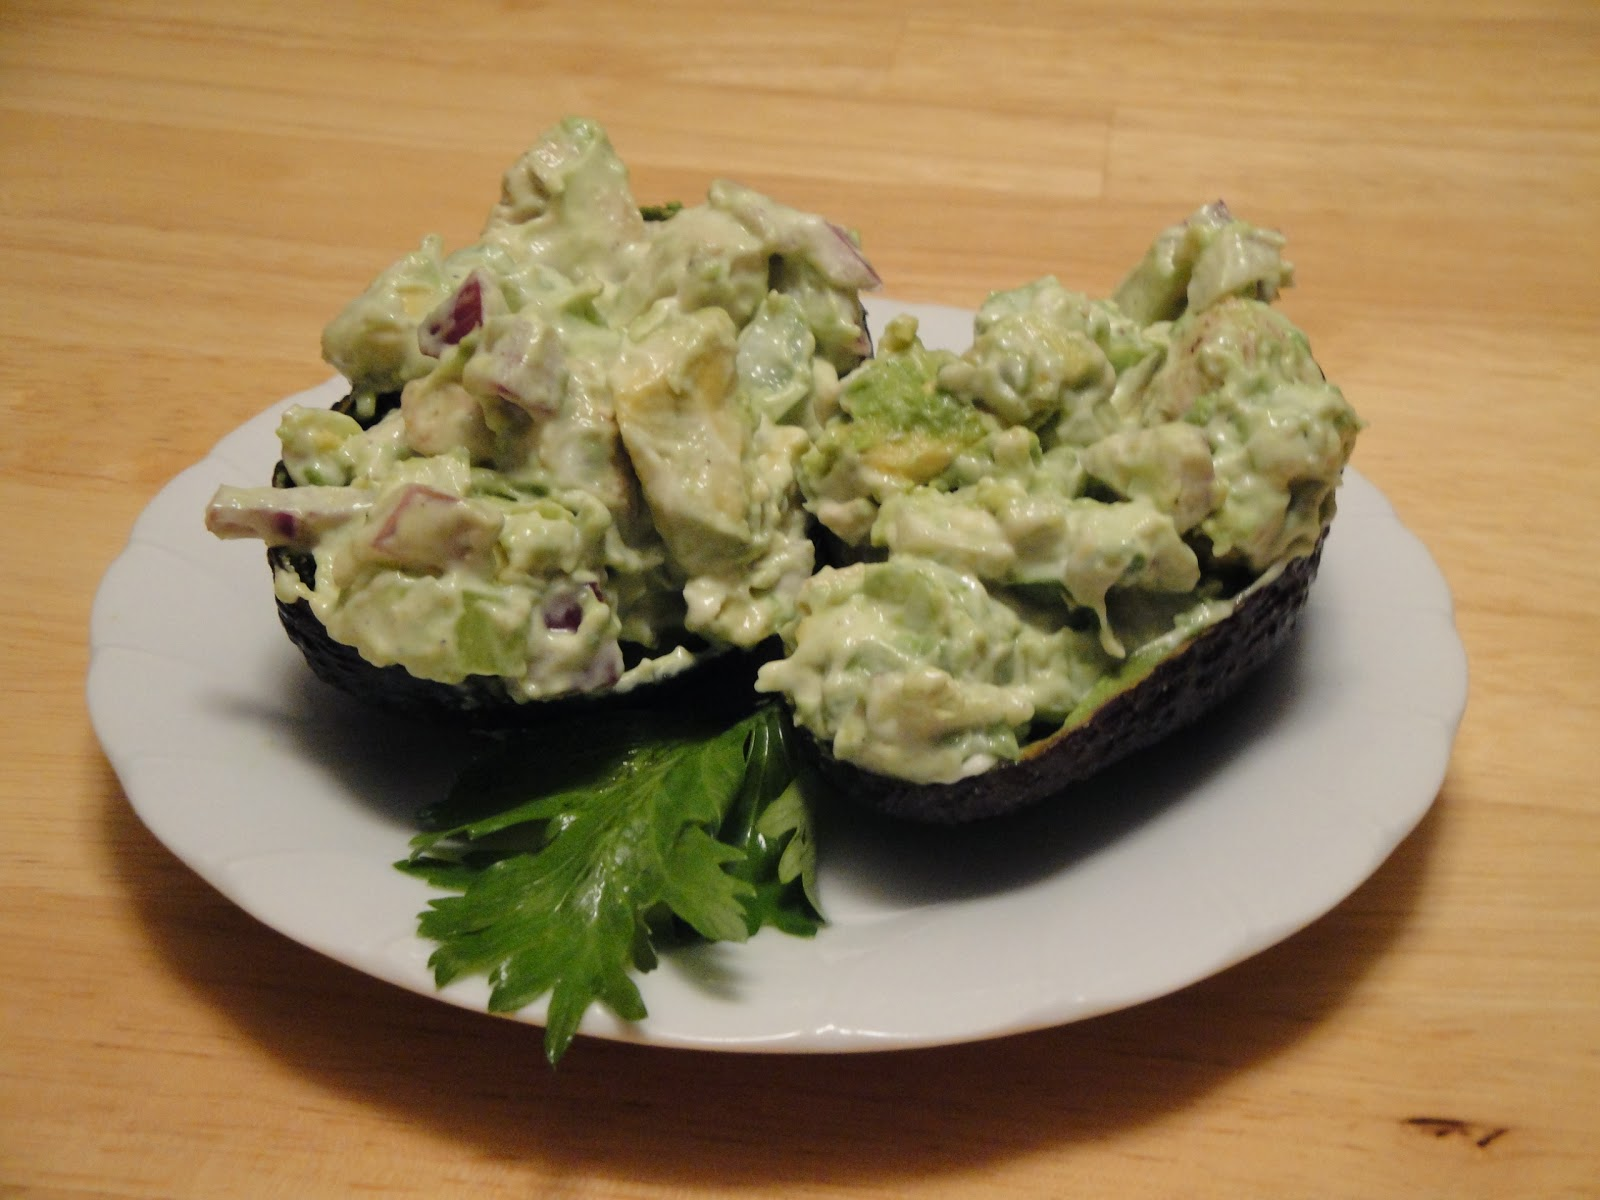 Download image Avocado Chicken Salad PC, Android, iPhone and iPad ...